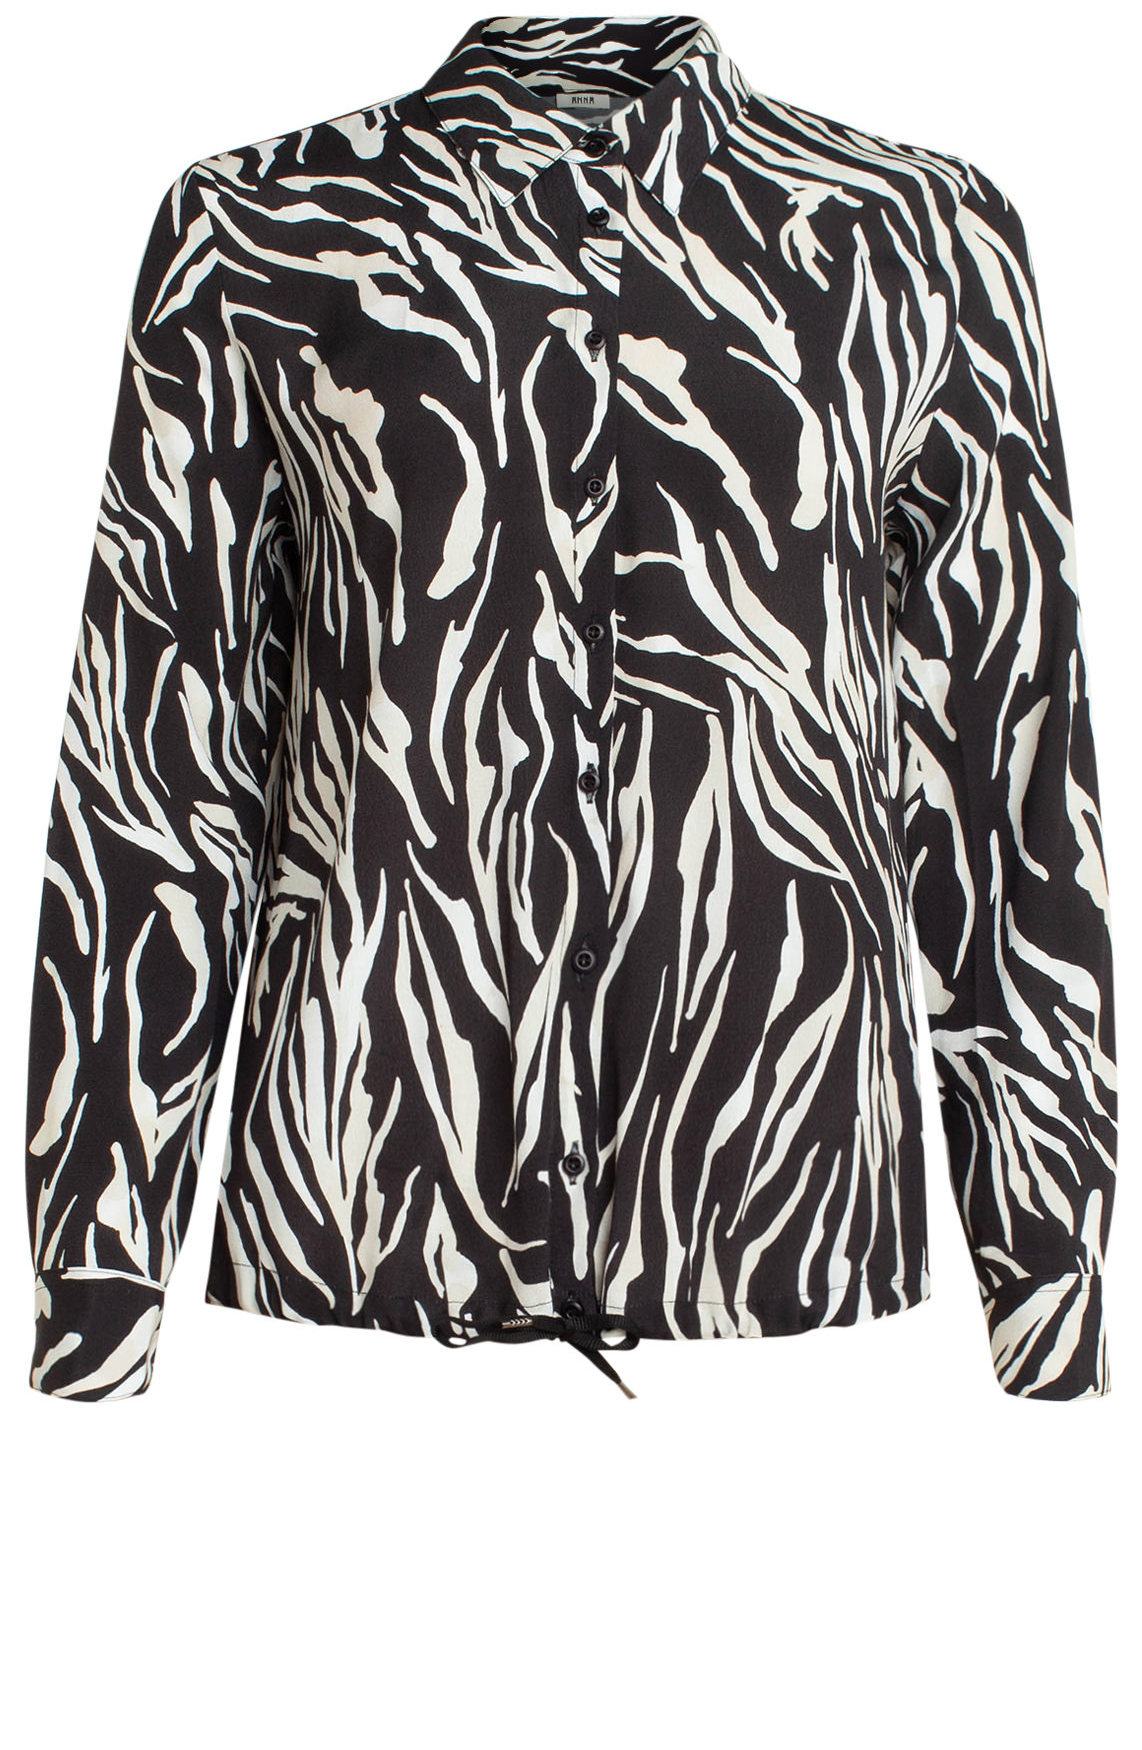 Anna Dames Blouse met animalprint zwart